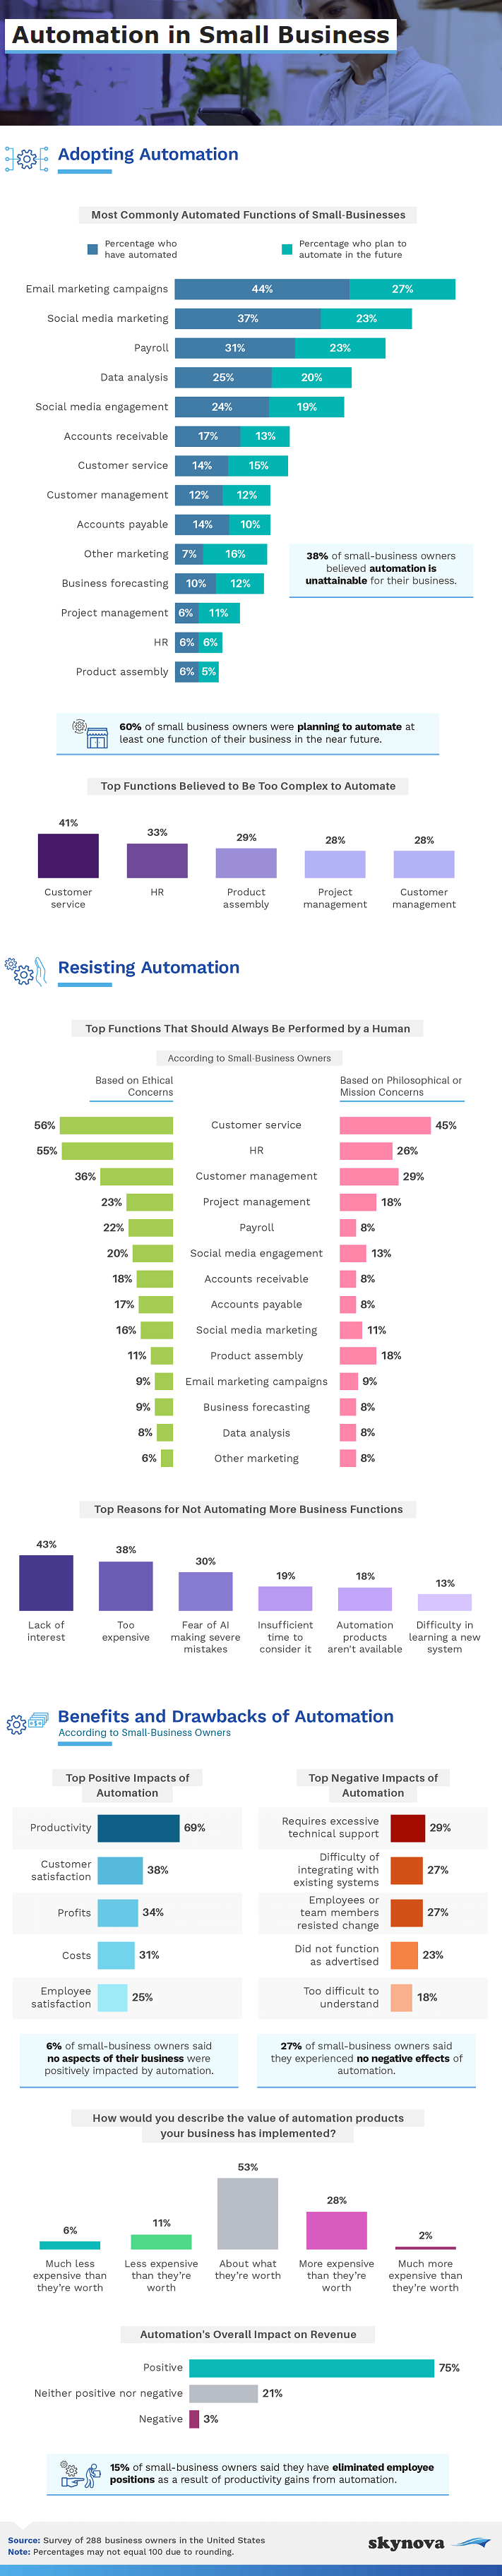 Automation among SMBs report